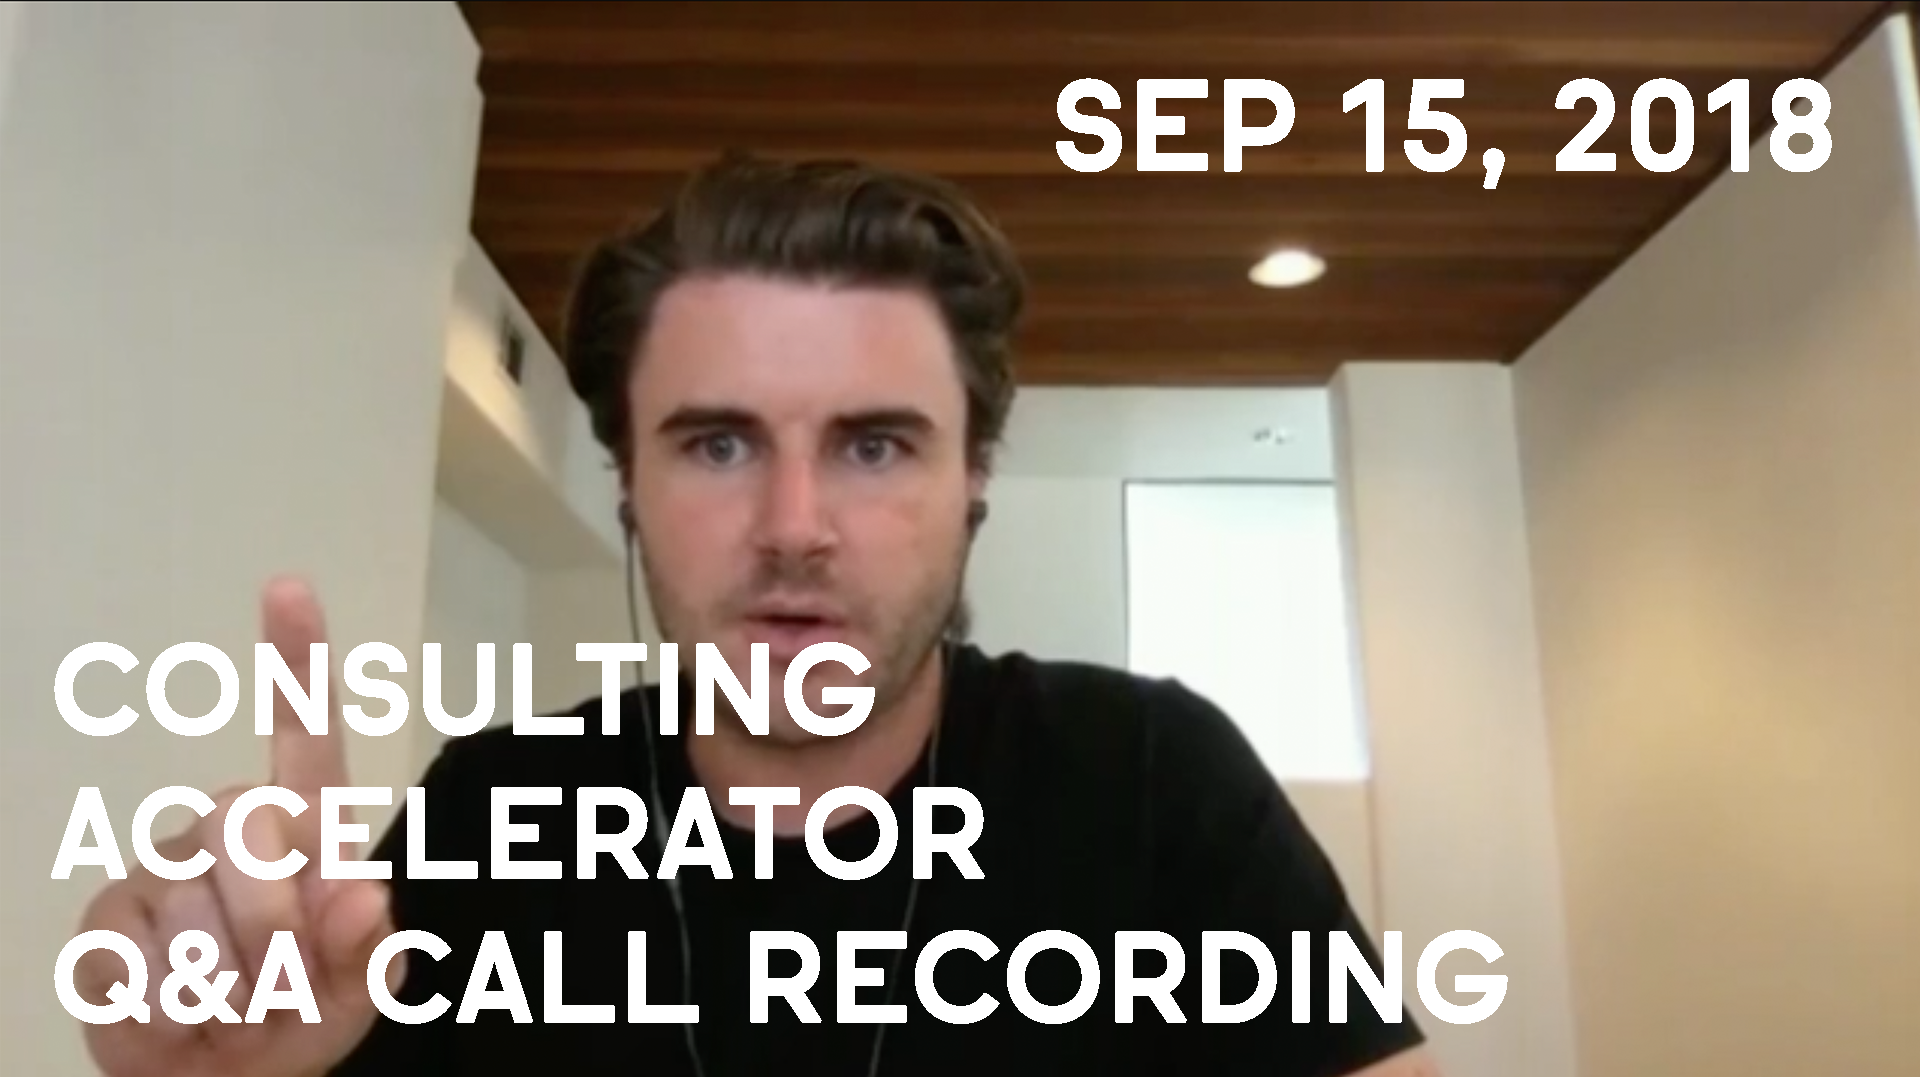 Consulting Accelerator Livestream Q&A, September 15th, 2018